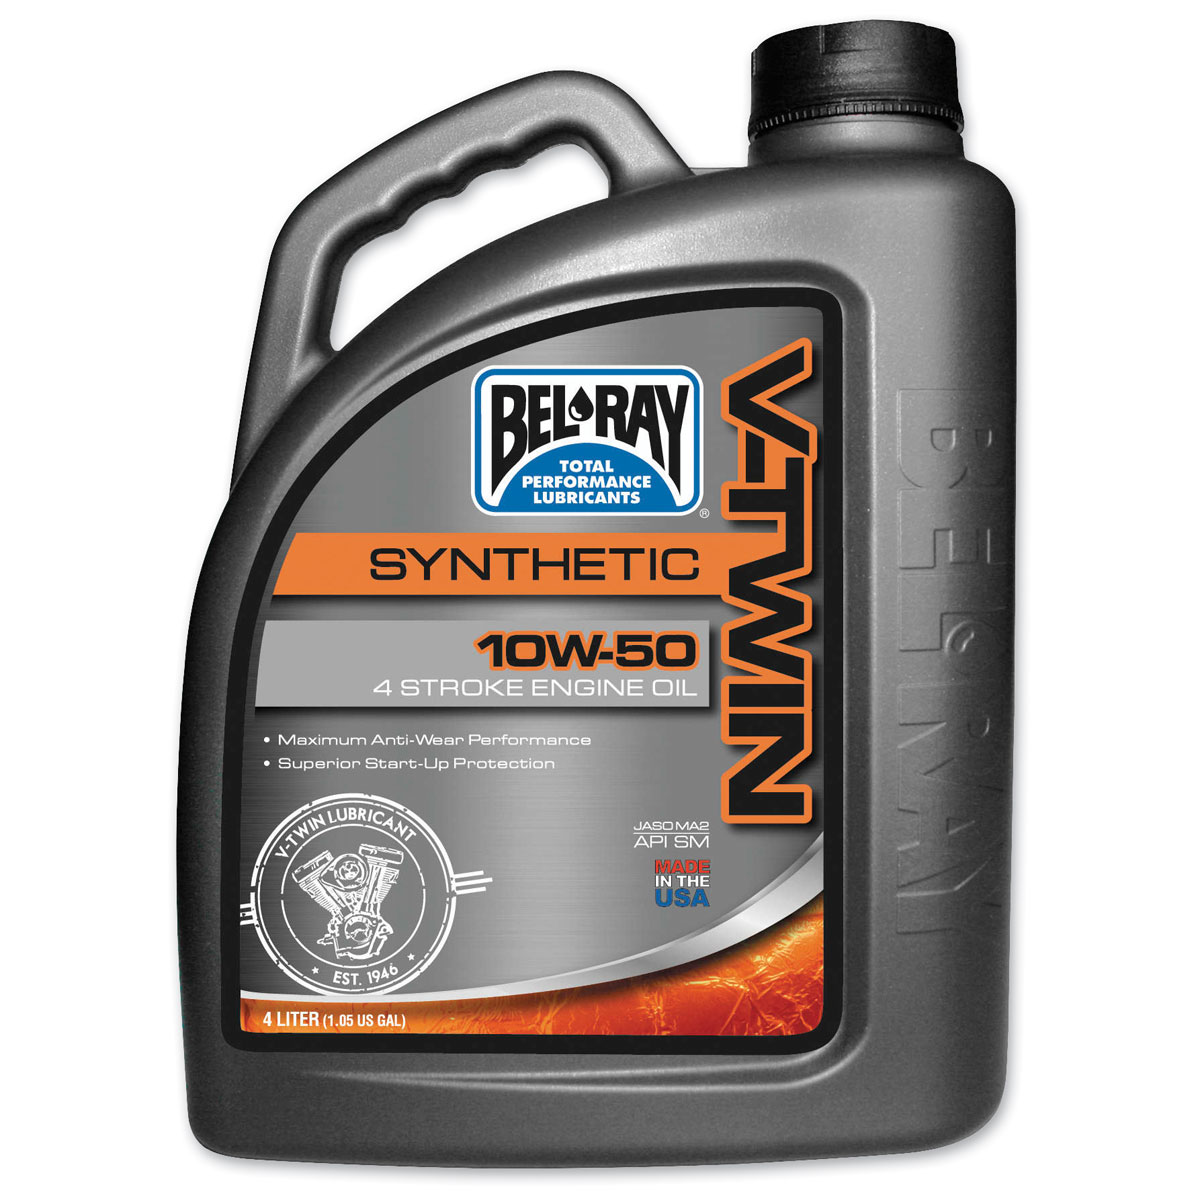 Bel-Ray V-Twin Synthetic 10W50 Engine Oil 4 Liter